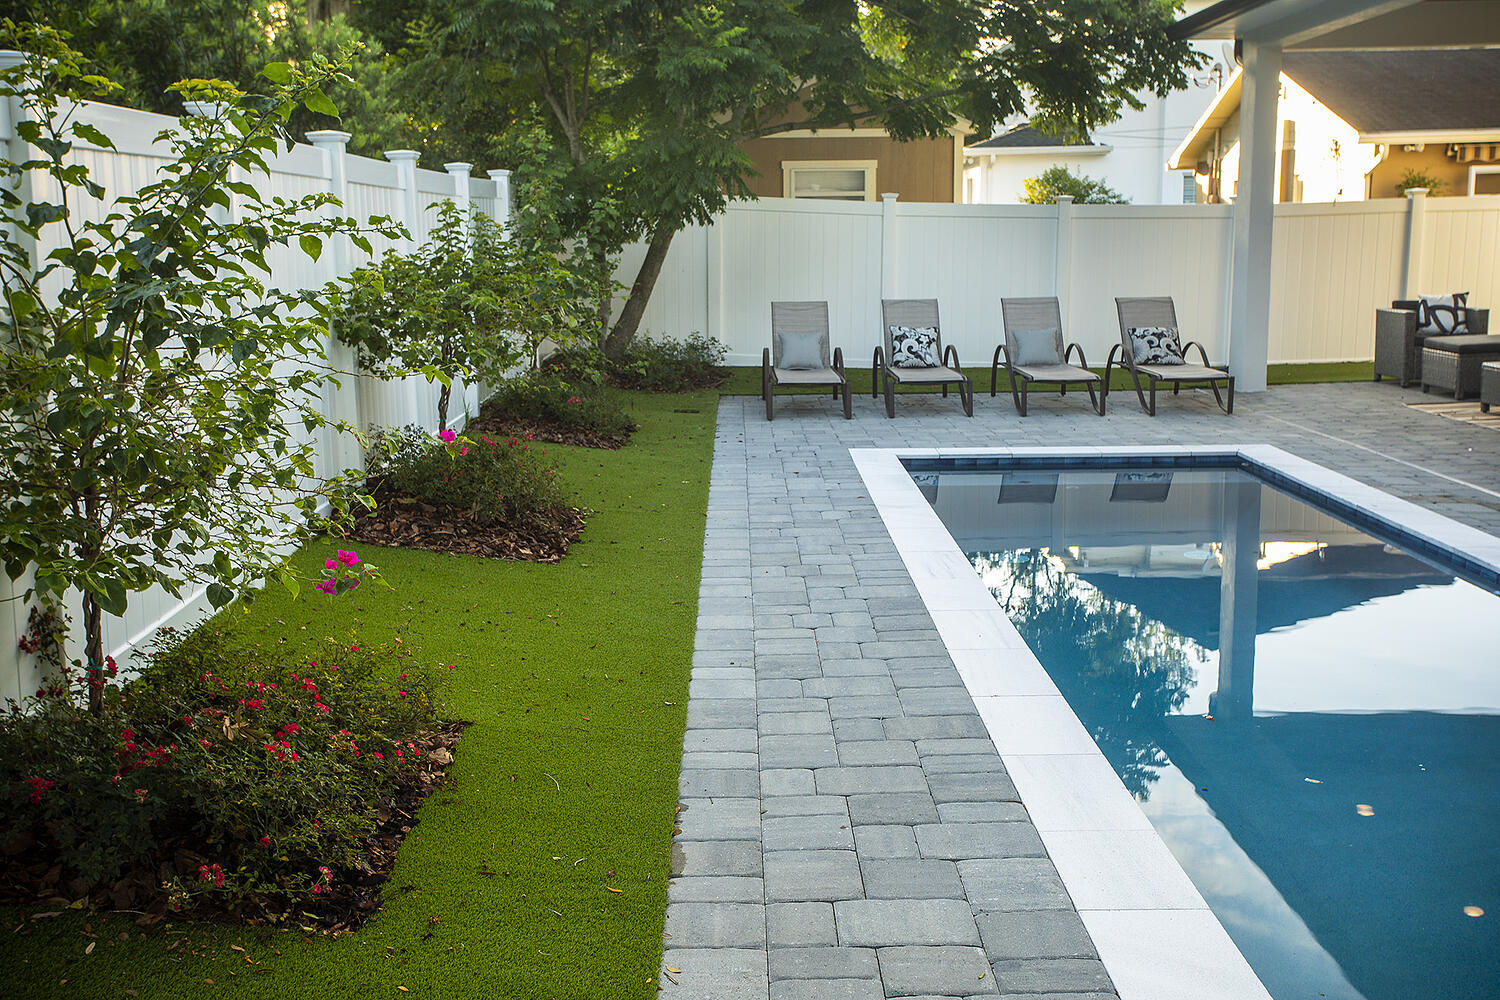 Pool surrounded by landscaping plants